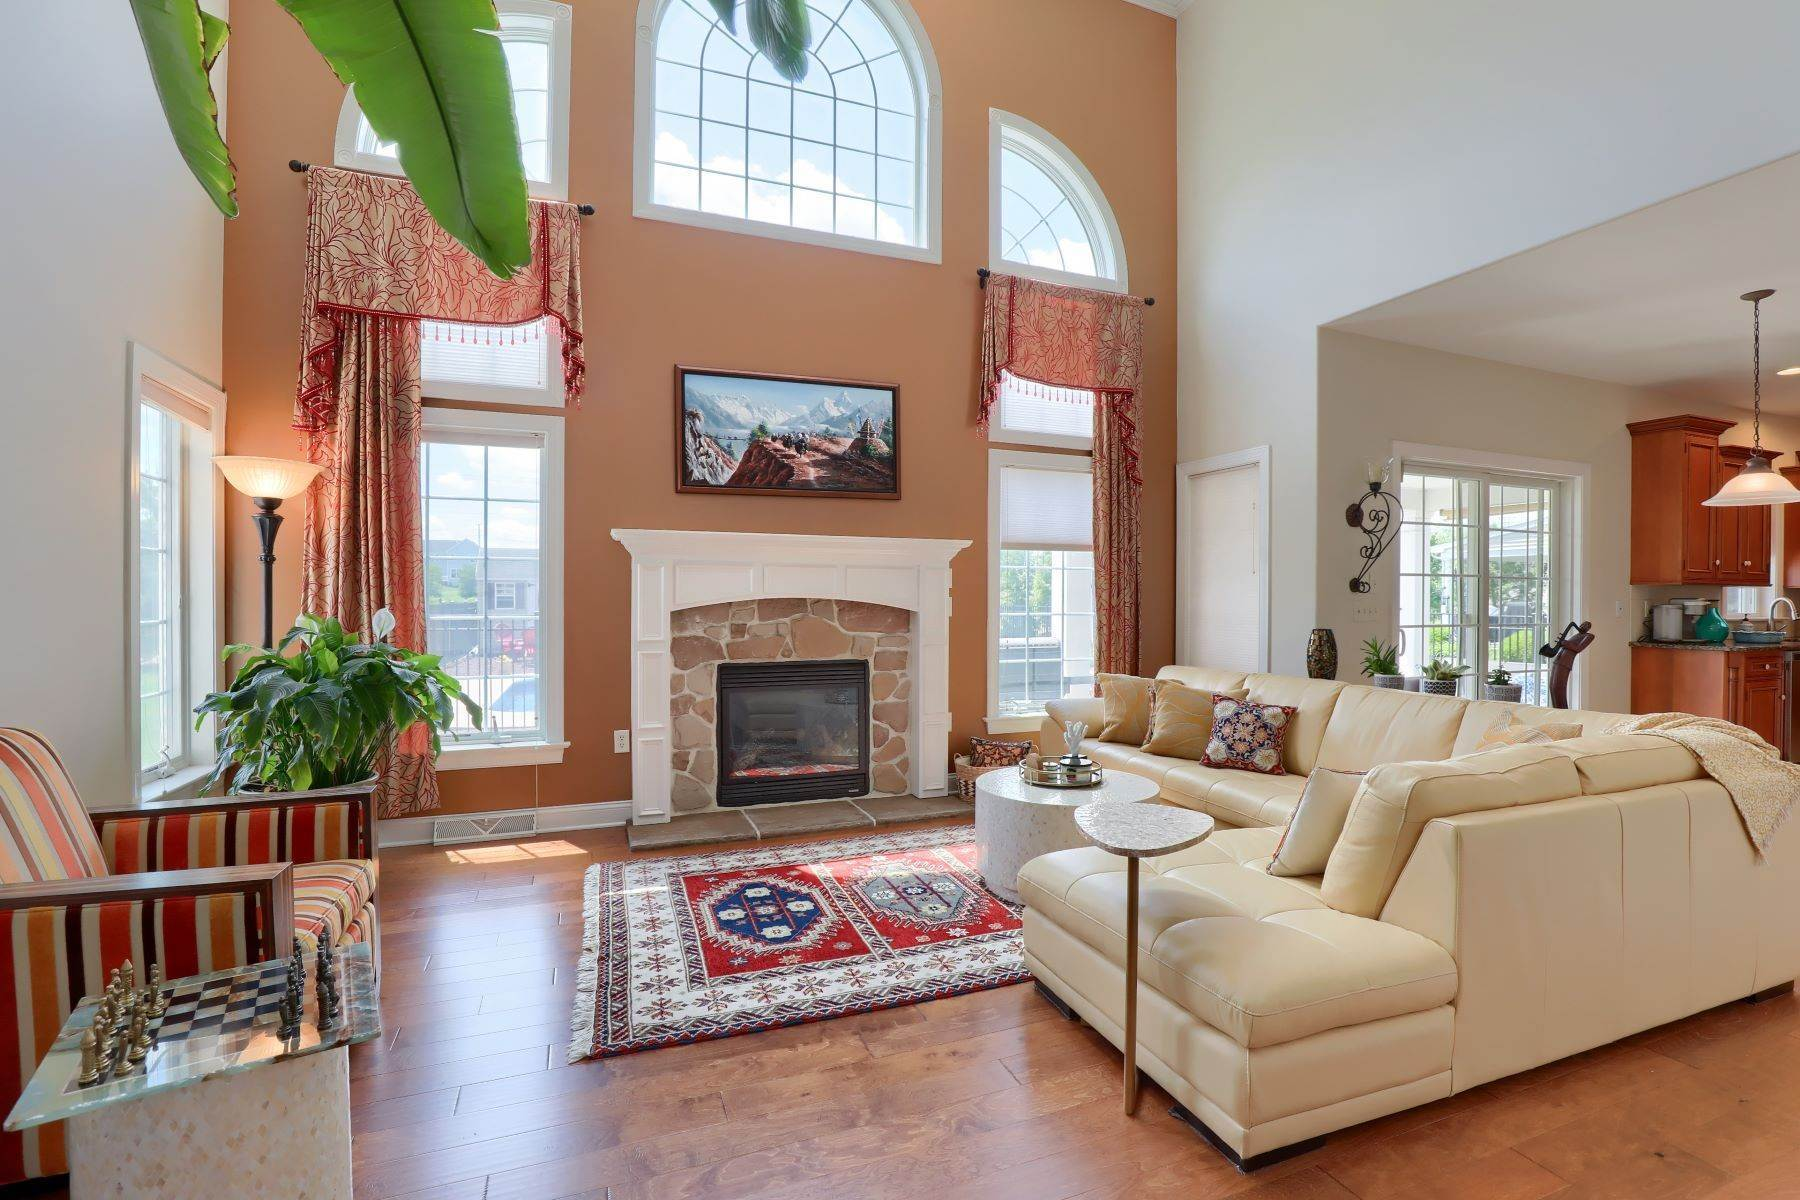 6. Single Family Homes for Sale at 18 Jared Place Lititz, Pennsylvania 17543 United States